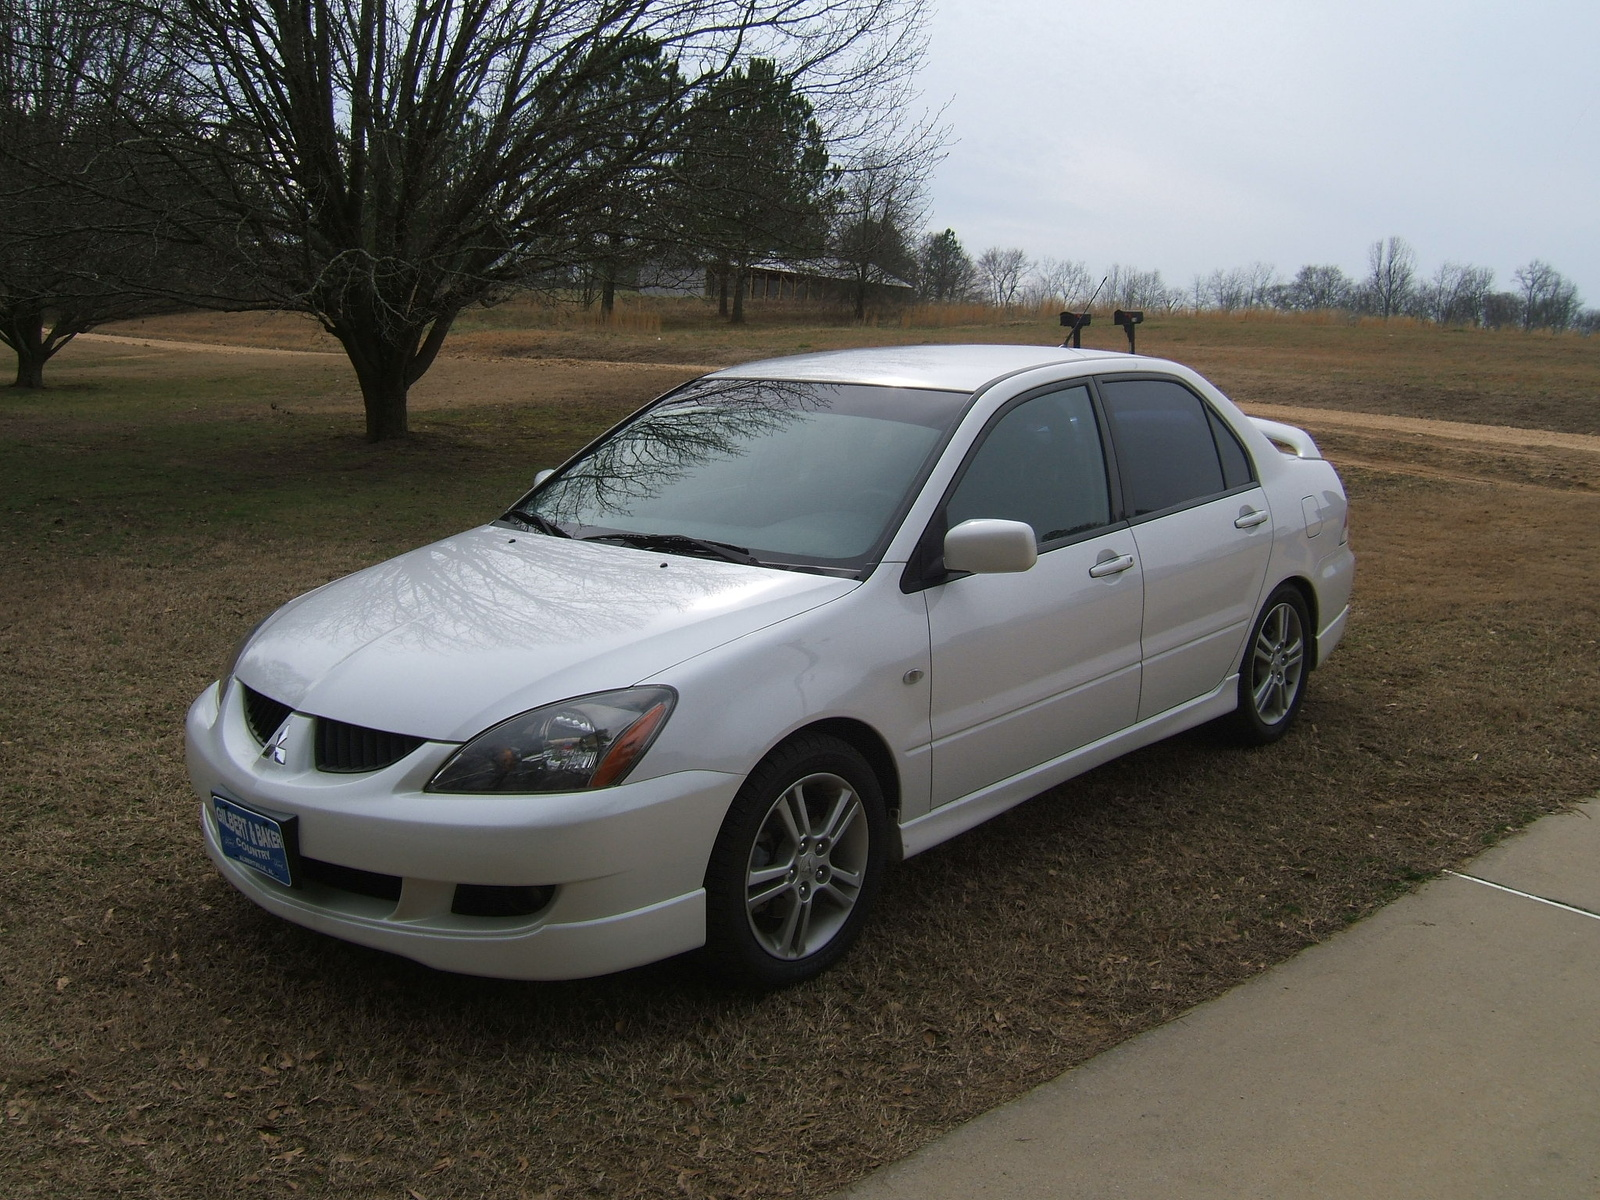 2004 Mitsubishi Lancer Other Pictures Cargurus